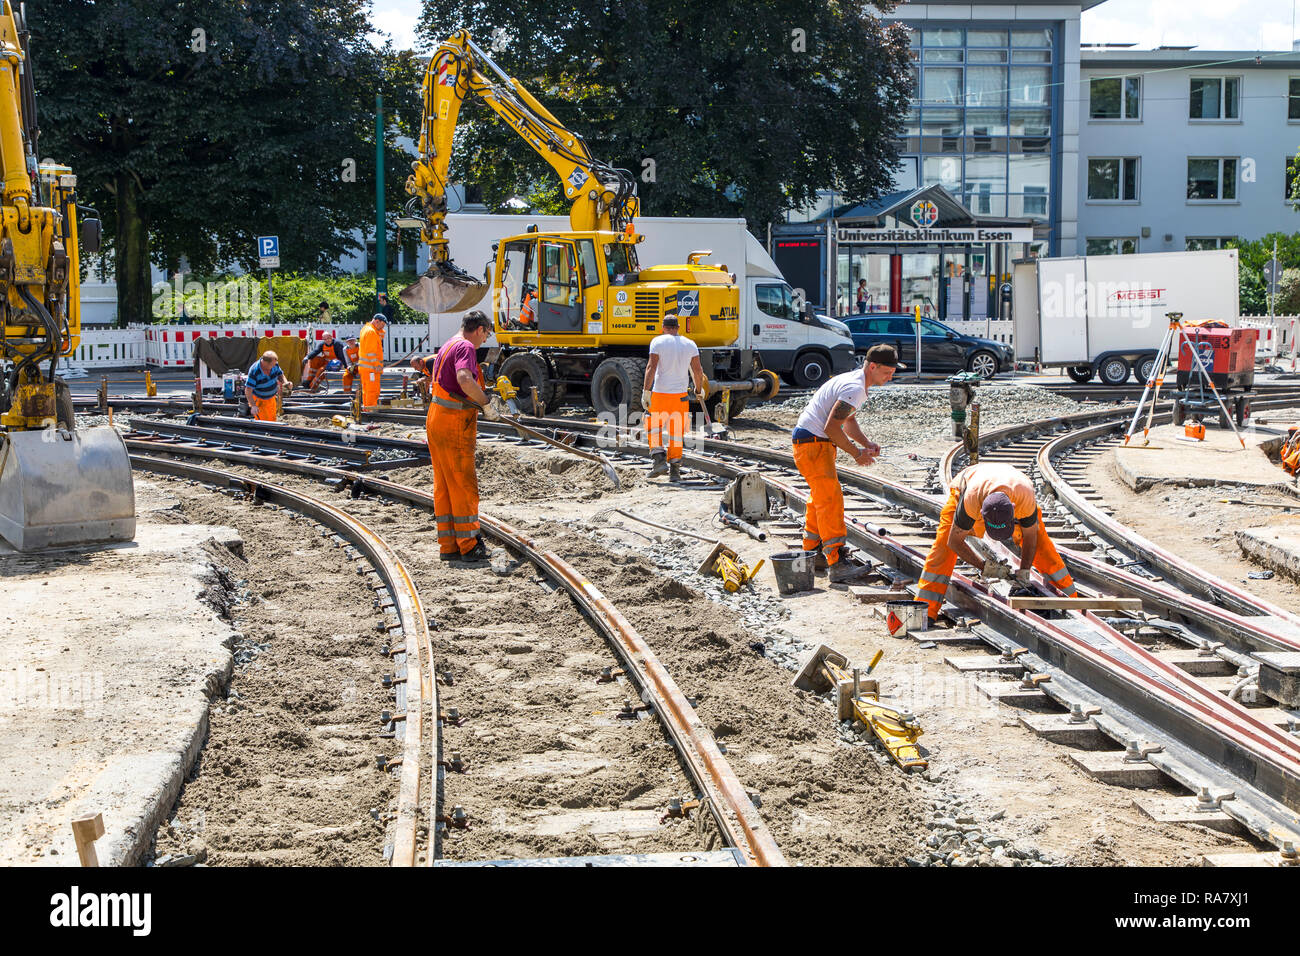 Construction work on tram rails, new construction, renovation of tram railway tracks, Essen, - Stock Image